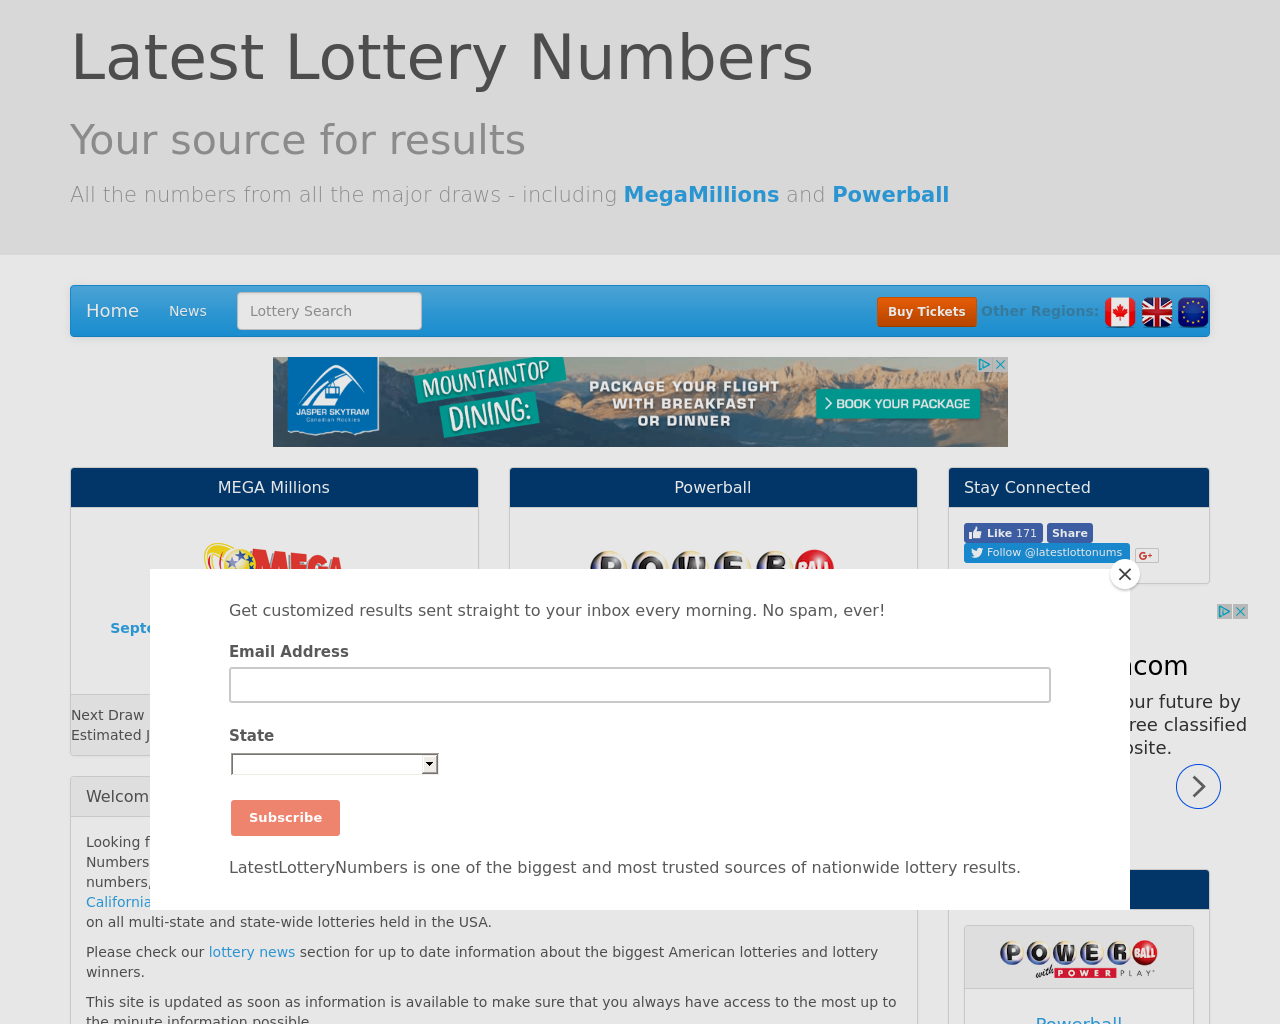 Latest-Lottery-Numbers-Advertising-Reviews-Pricing